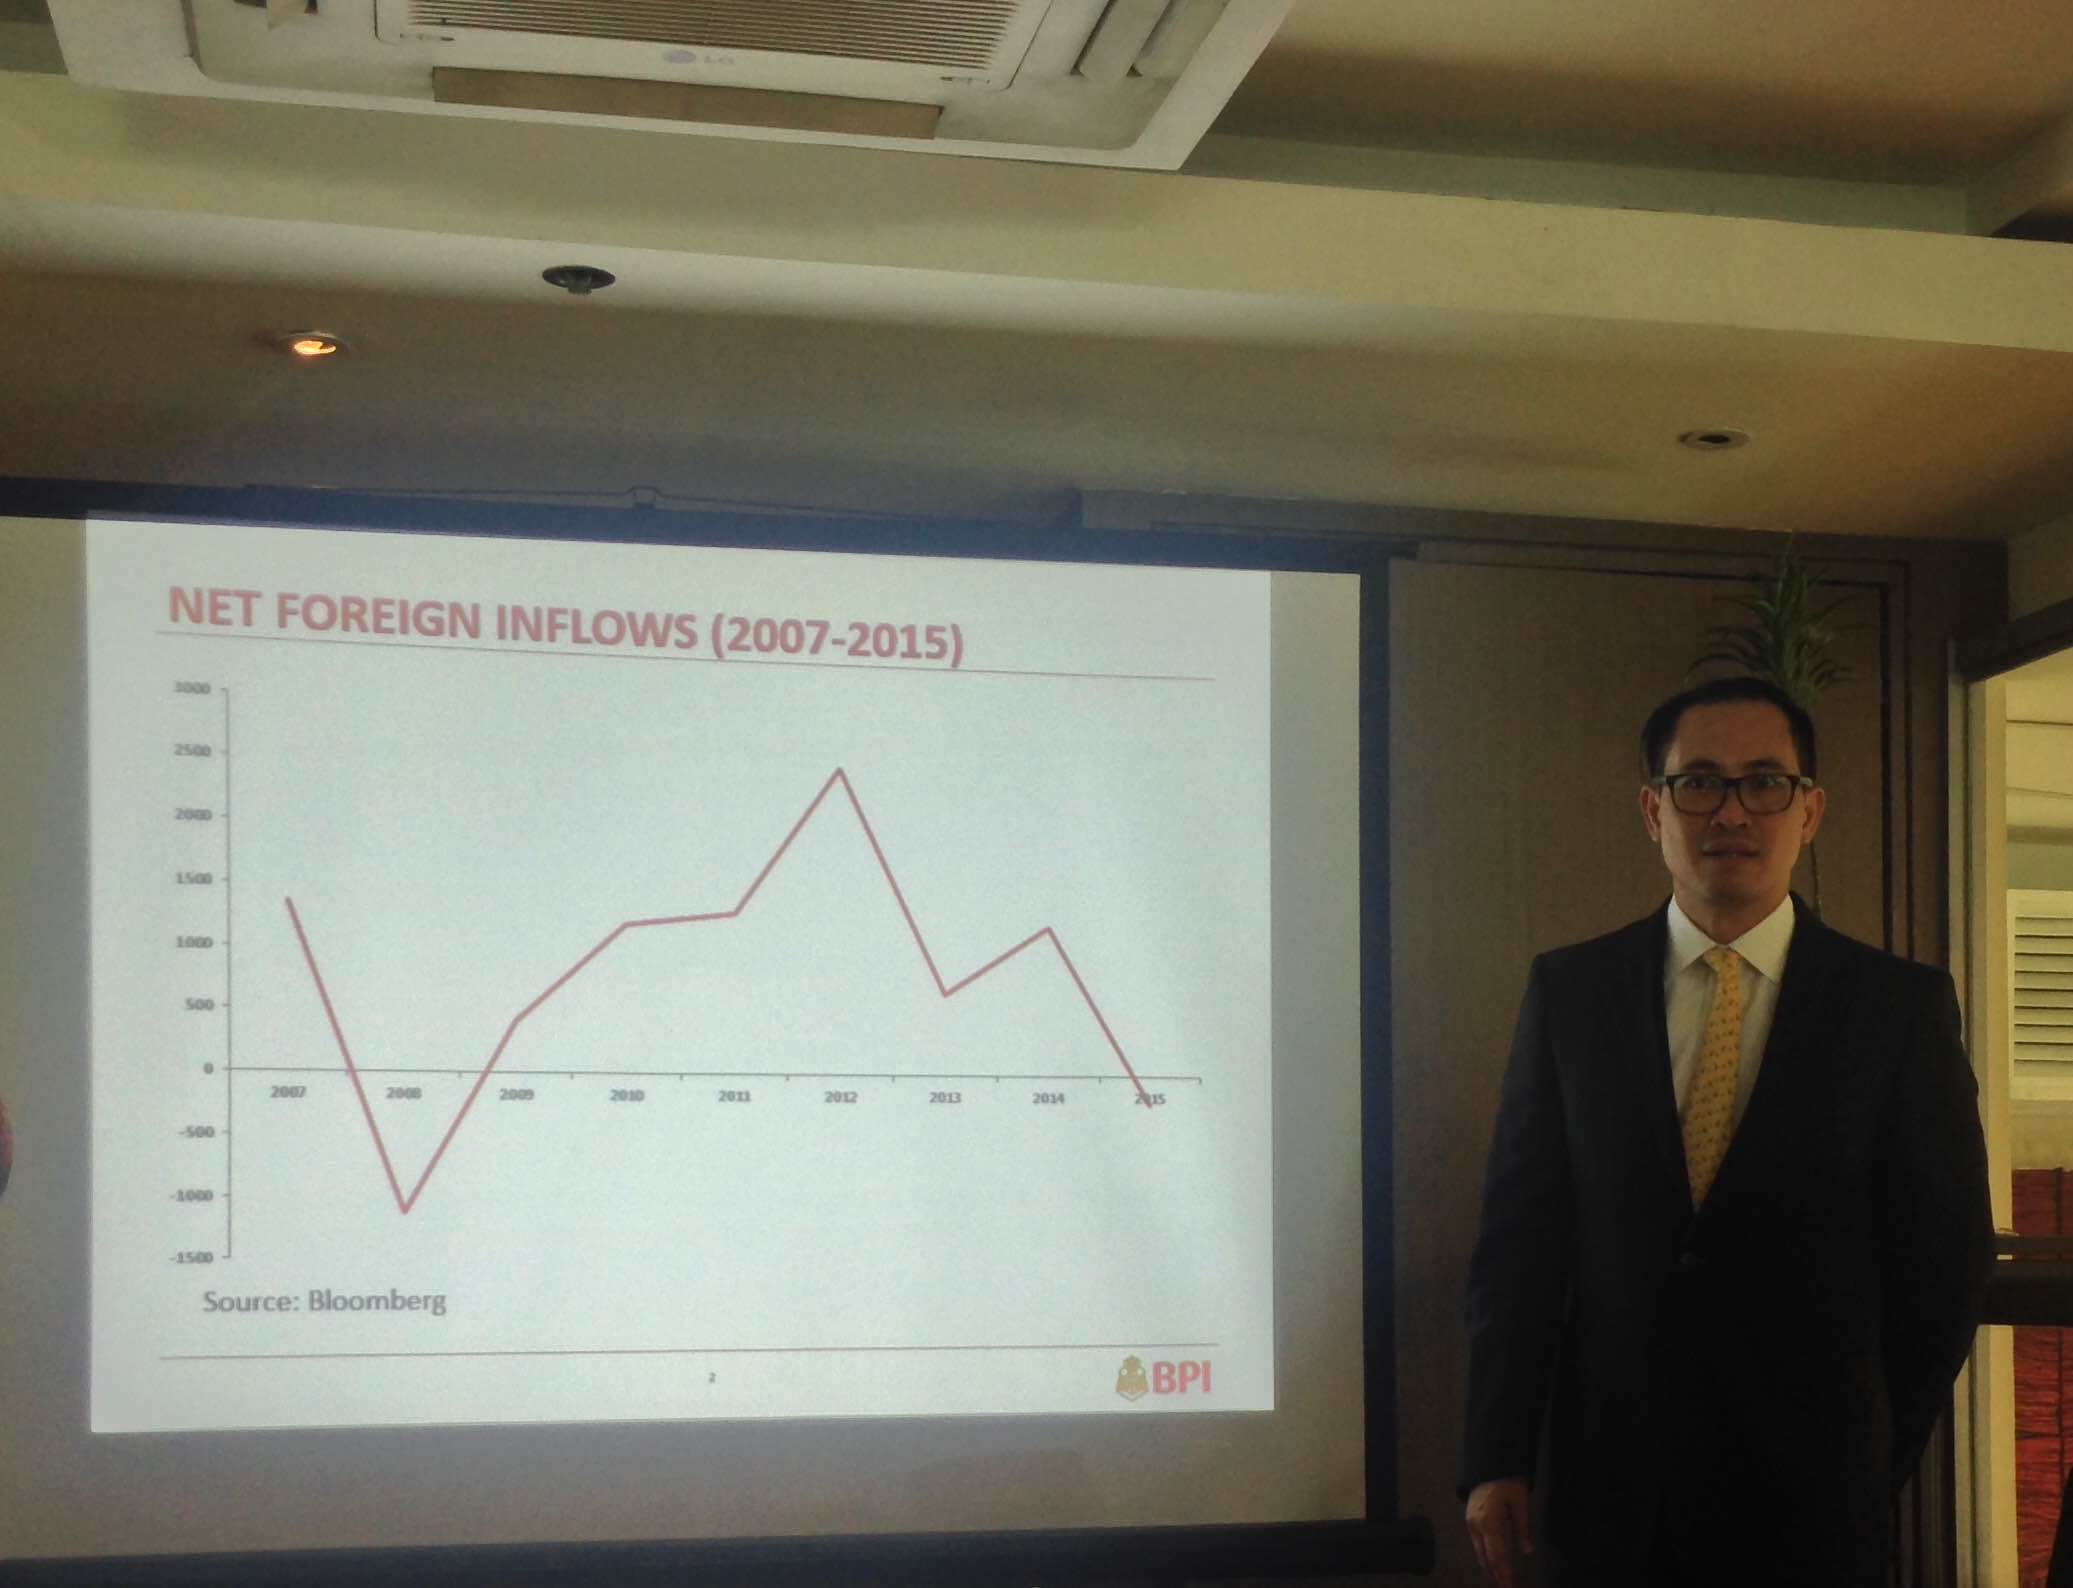 NOT YET STABILIZED. BPI Securities' Oyson says the Philippines is not yet out of the woods in terms of the stock market. Photo by Chrisee Dela Paz/Rappler